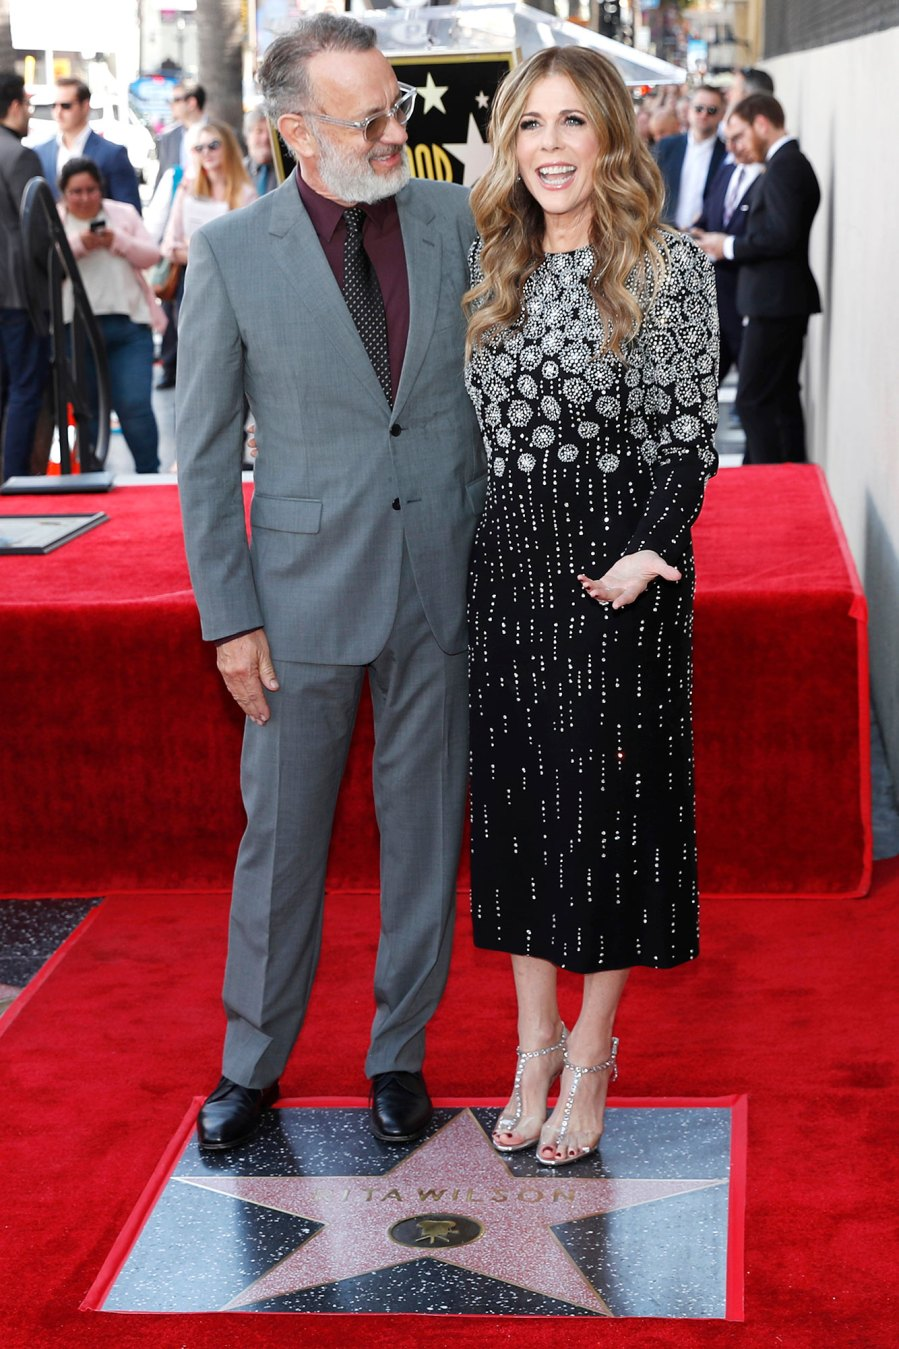 March 2019 Walk of Fame Tom Hanks and Rita Wilson Relationship Timeline